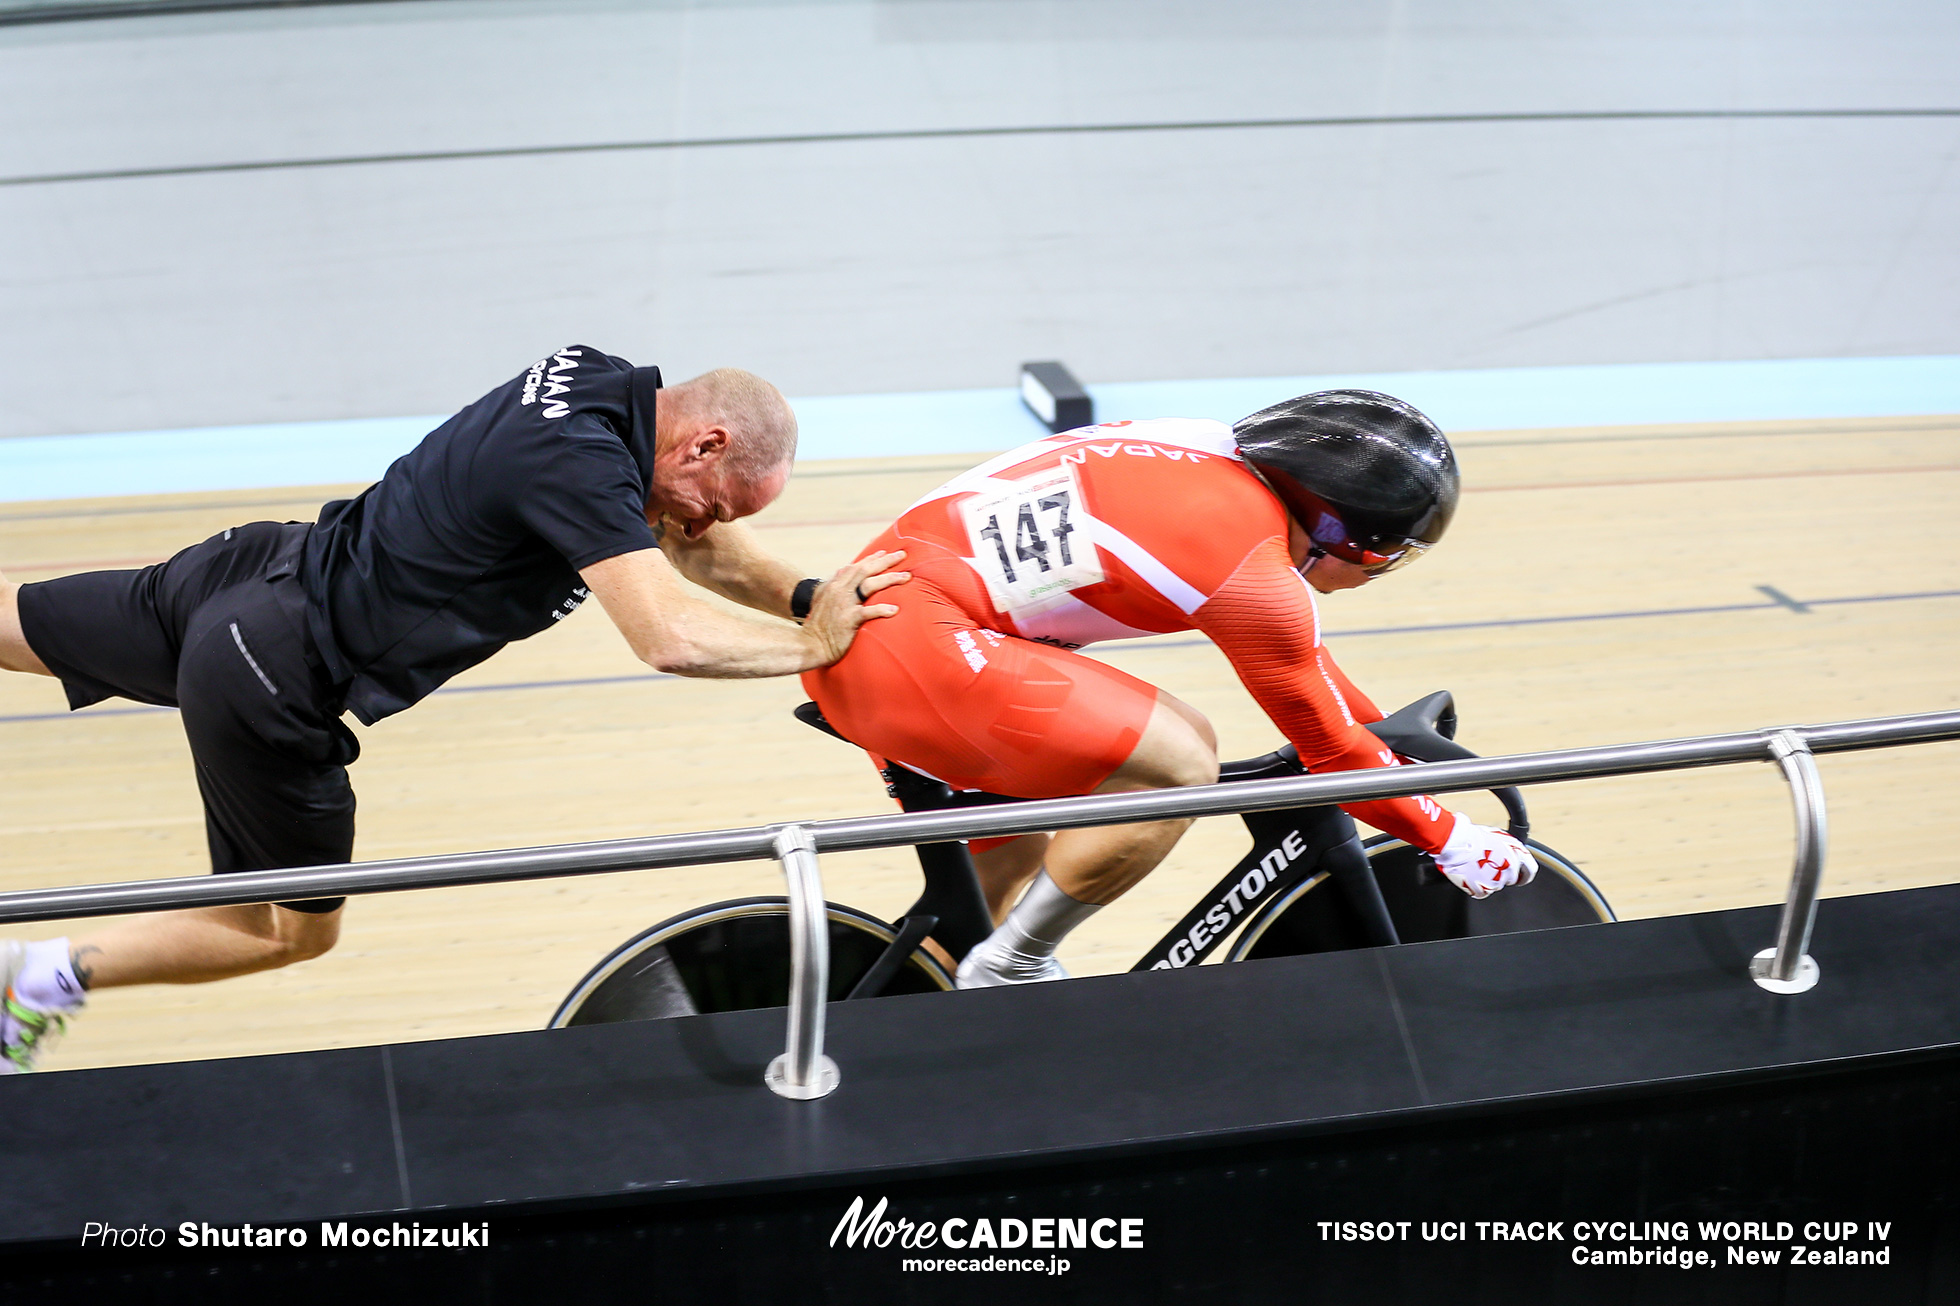 Qualifying / Men's Sprint / TISSOT UCI TRACK CYCLING WORLD CUP IV, Cambridge, New Zealand, 深谷知広